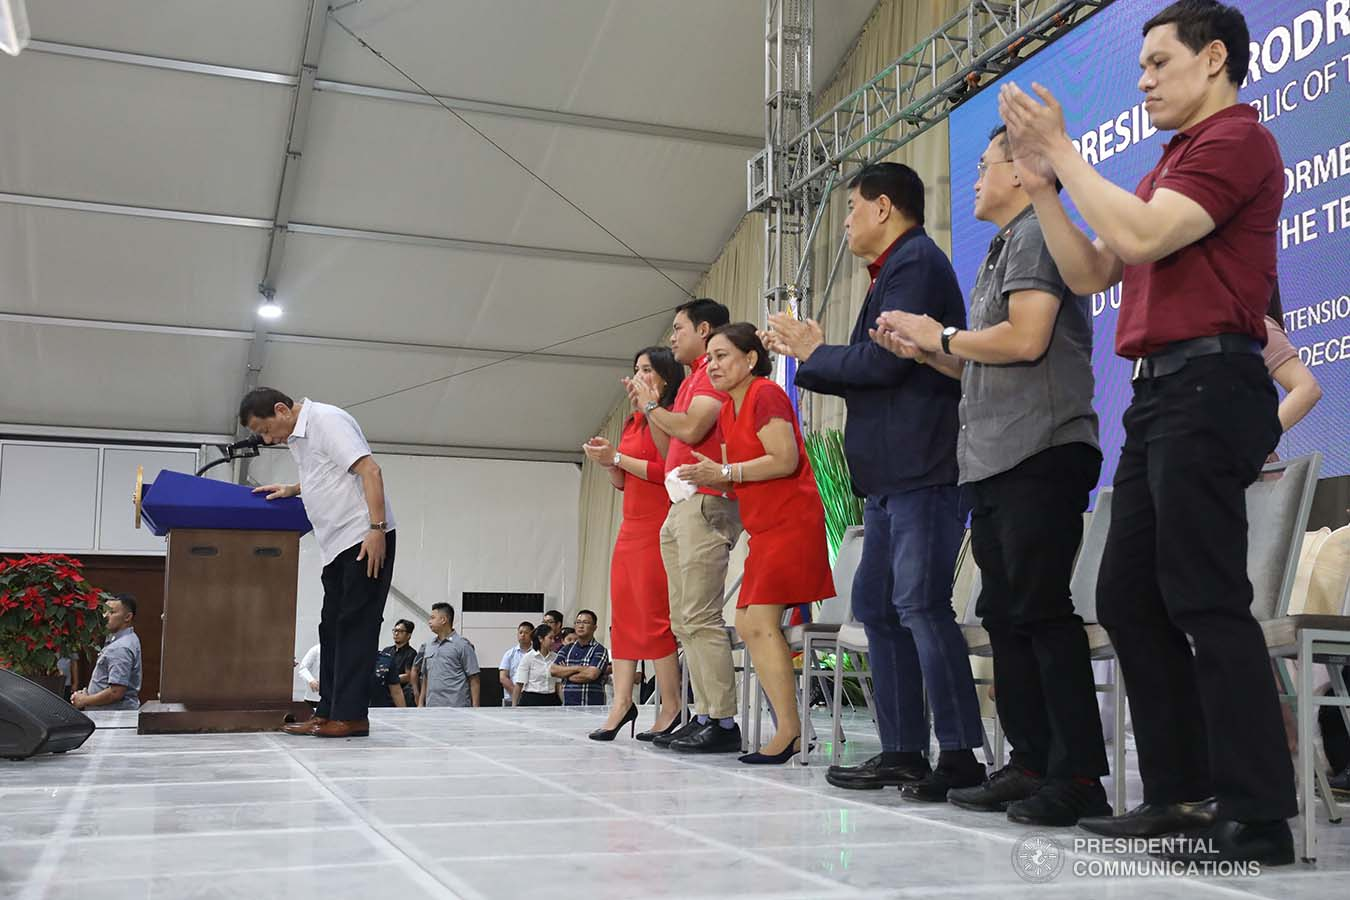 President Rodrigo Roa Duterte takes a bow before the guests during the inauguration of The Tent at Vista Global South and the birthday celebration former Senate President Manuel Villar in Las Piñas City on December 12, 2019. SIMEON CELI JR./PRESIDENTIAL PHOTO